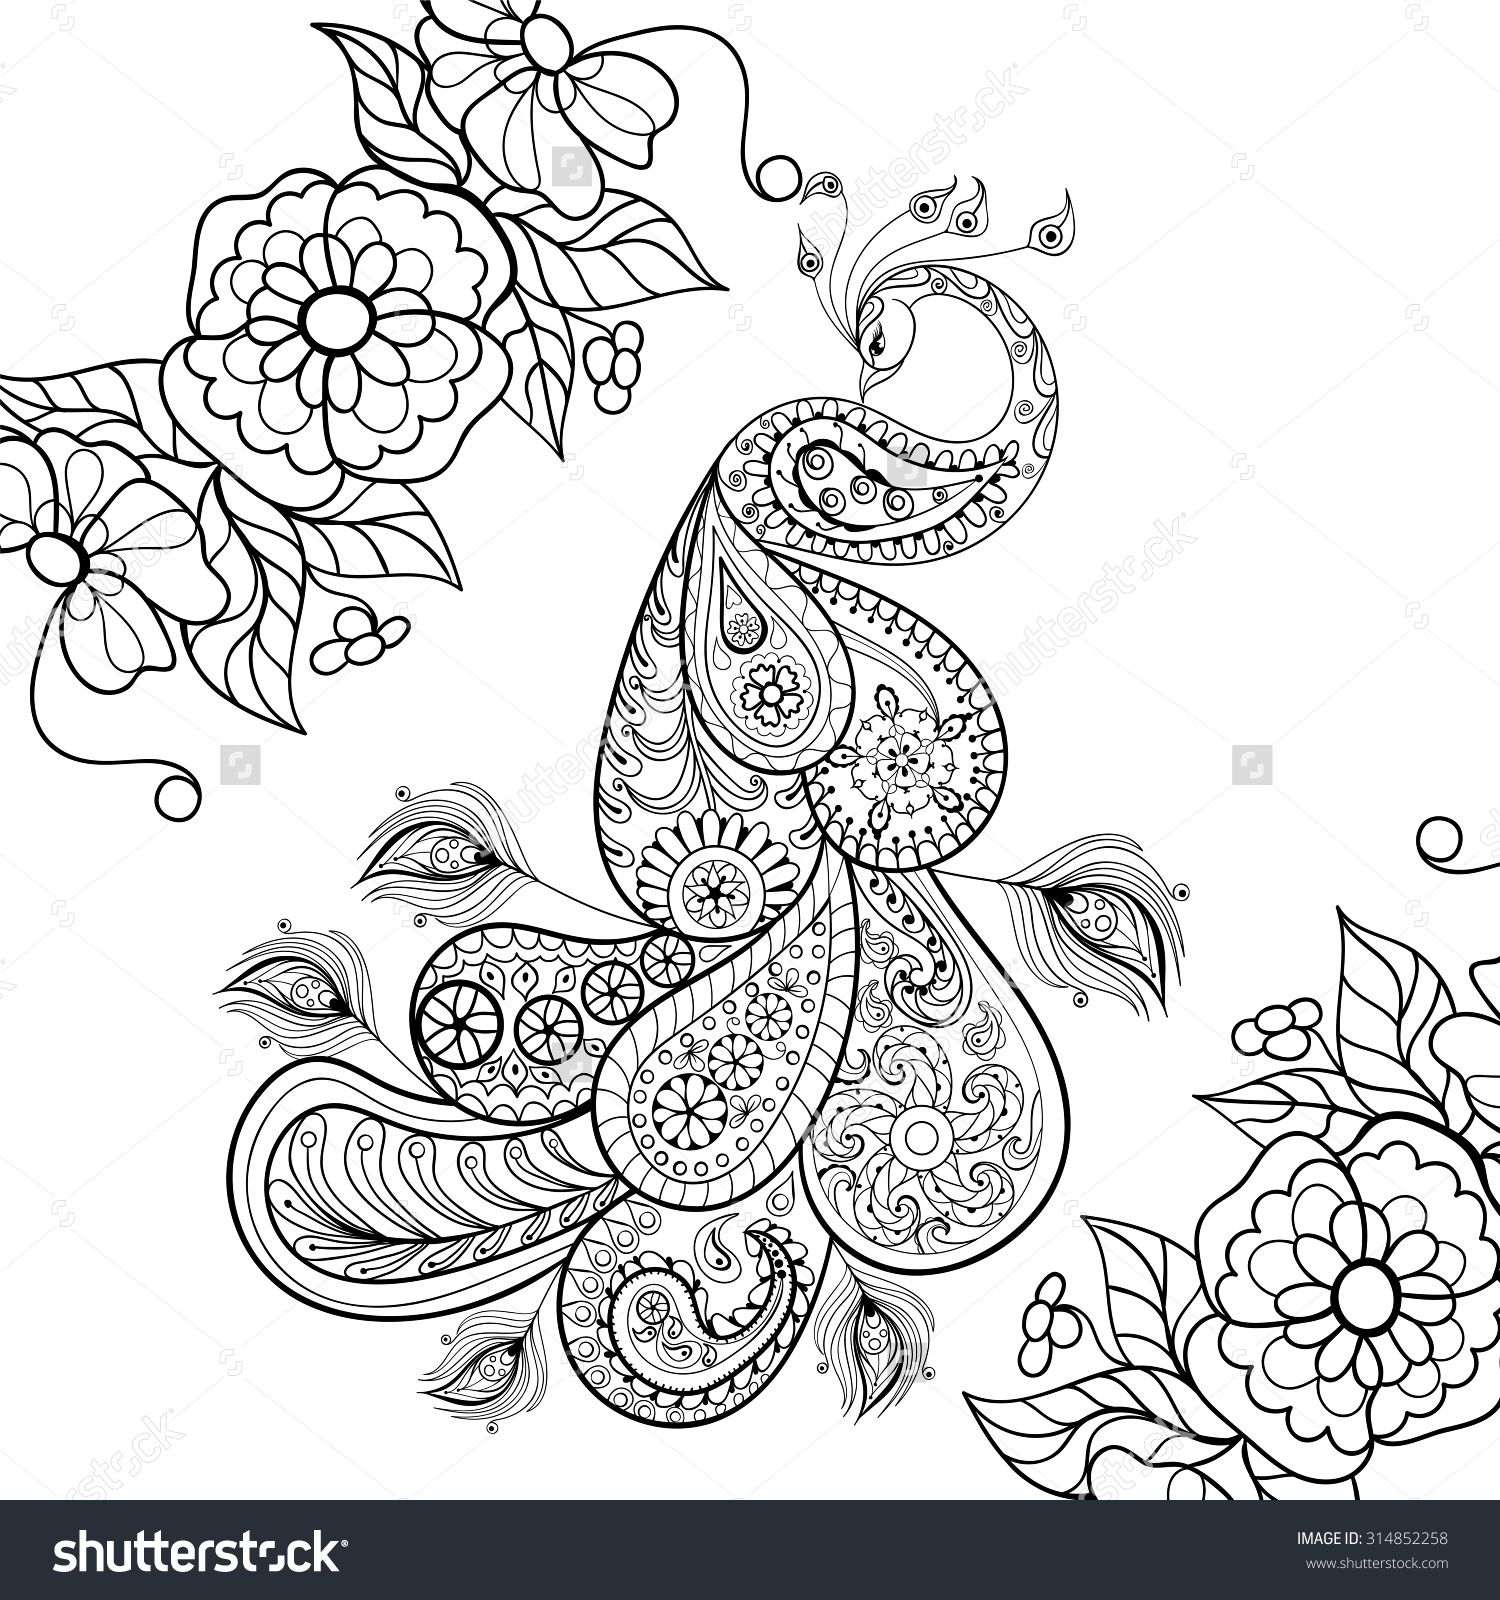 image result for peacock animal adult colouring - Art Therapy Coloring Pages Animals